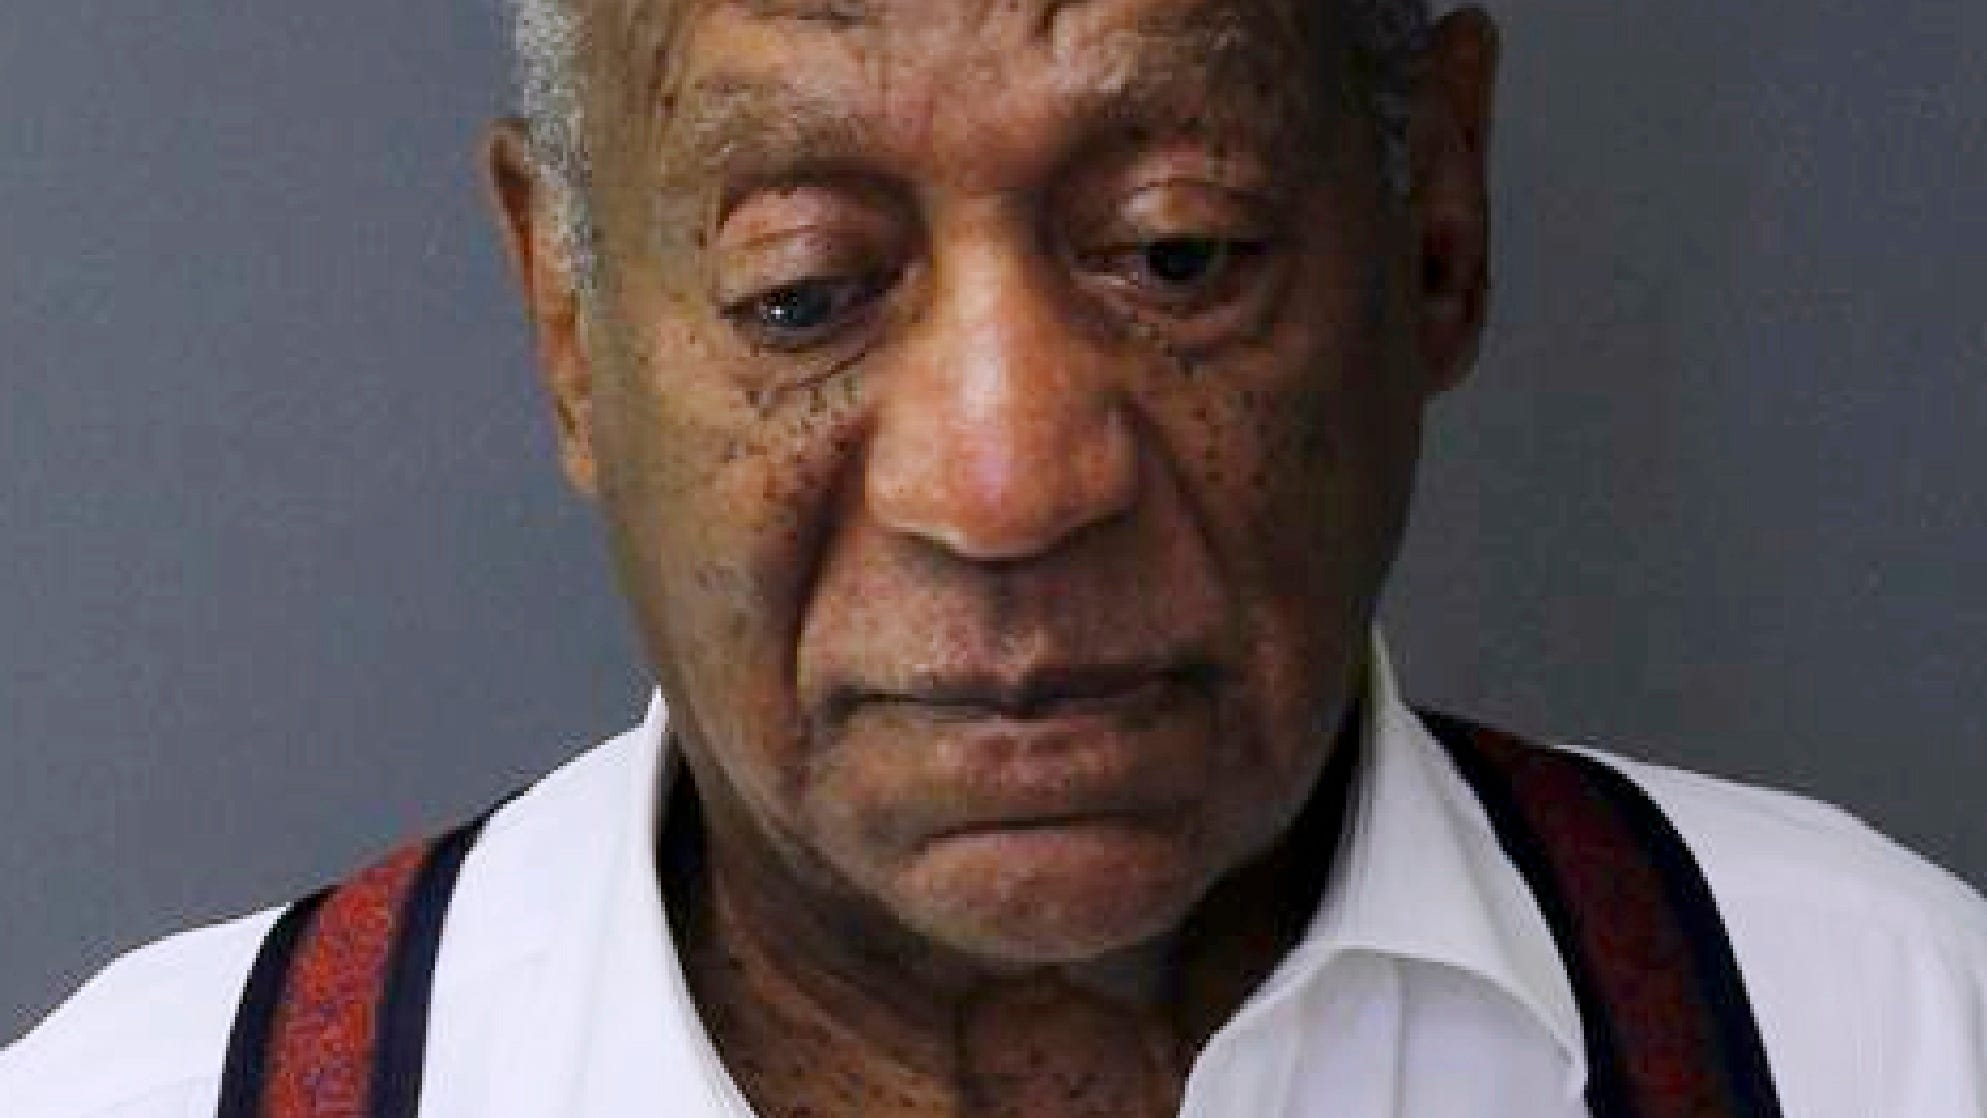 Bill Cosby is seen in a new booking photo taken after he received a 3-to-10 year prison sentence Tuesday.